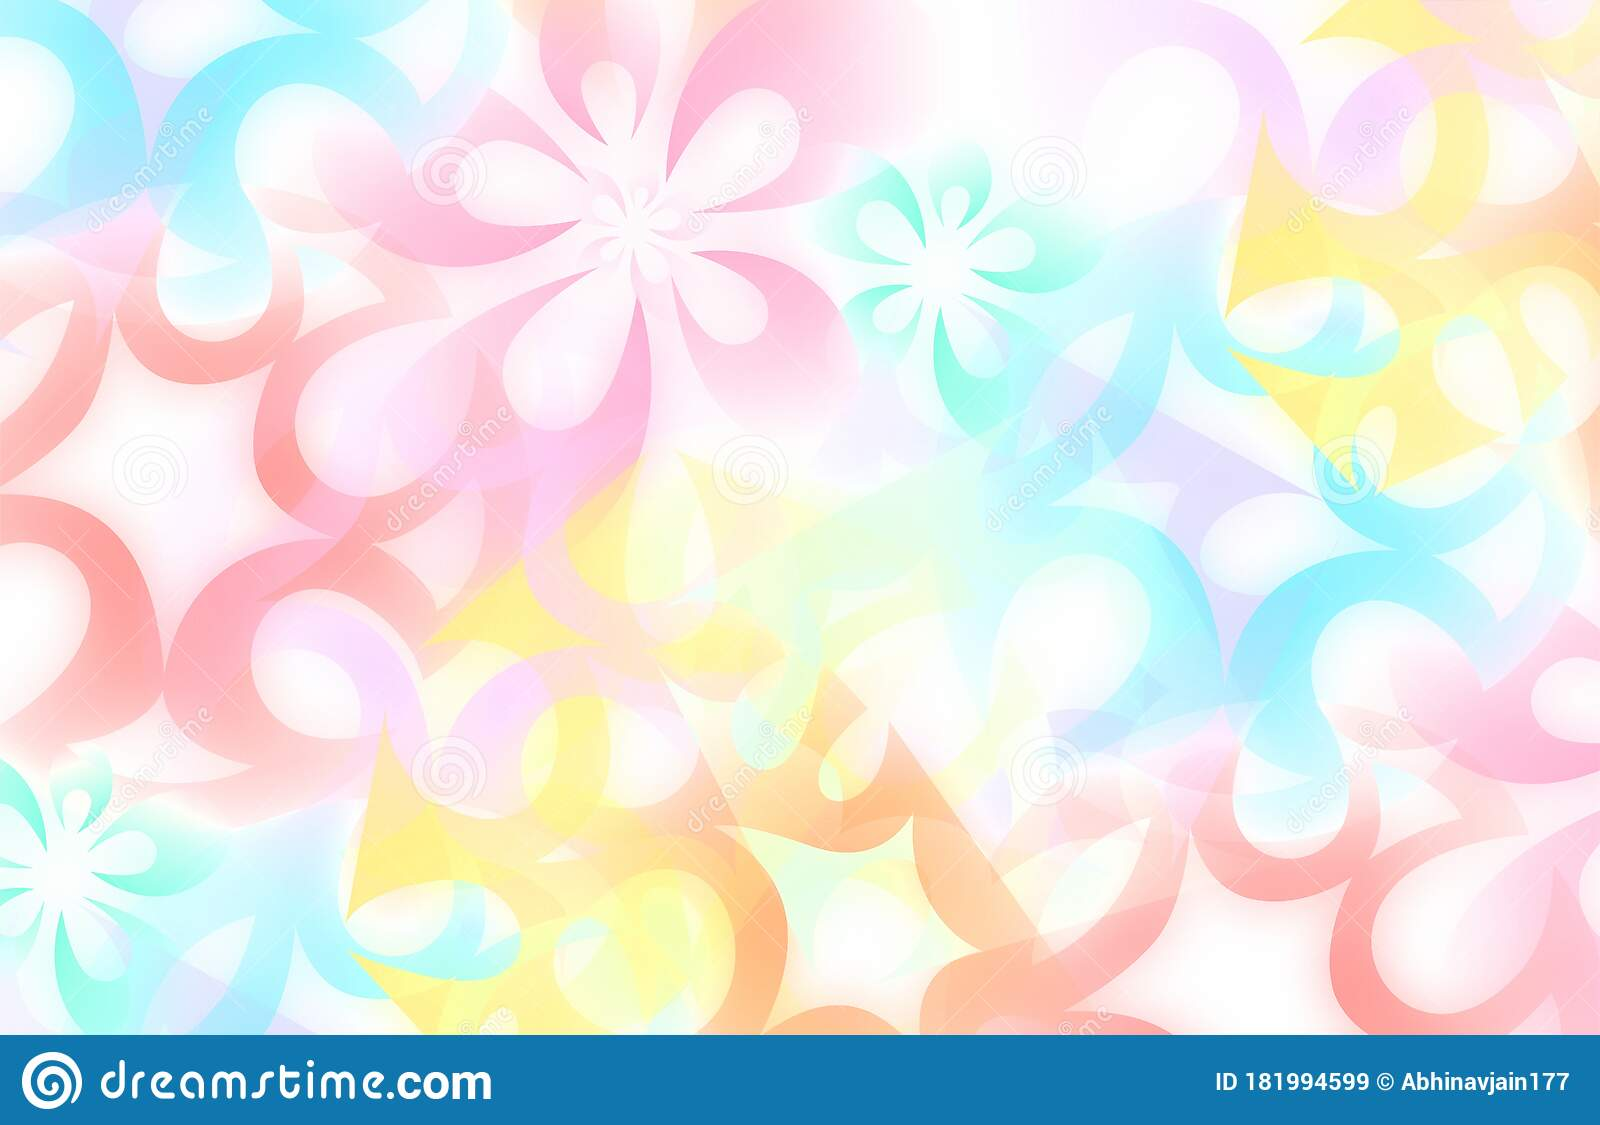 Abstract Bright Colorful Wallpaper Background In Vector Bright Glowing Colorful Background Wallpaper Stock Illustration Illustration Of Books Design 181994599